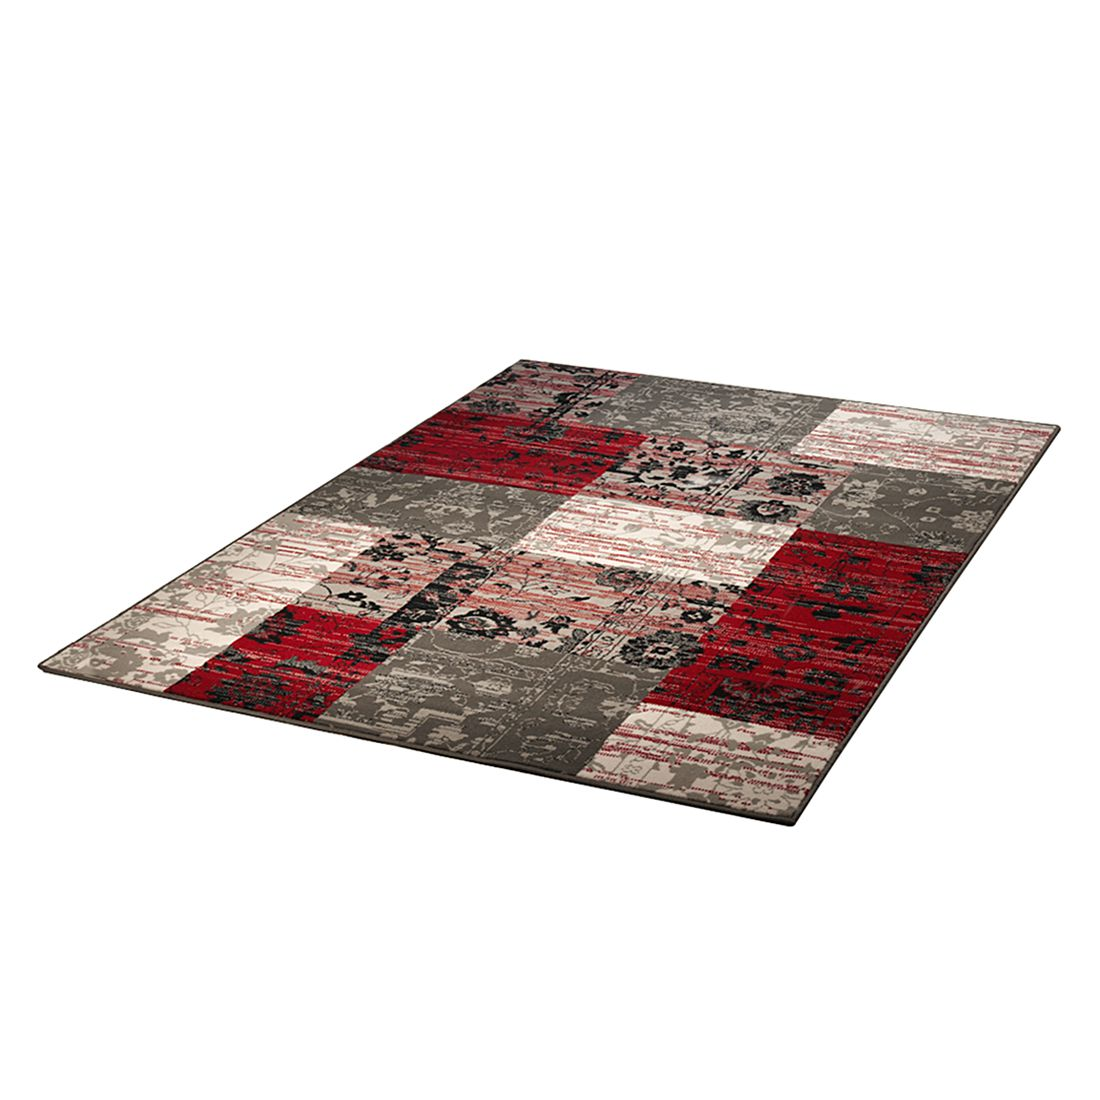 Tapijt Prime Pile Billy Jean - grijs/rood - 80x150cm, Hanse Home Collection